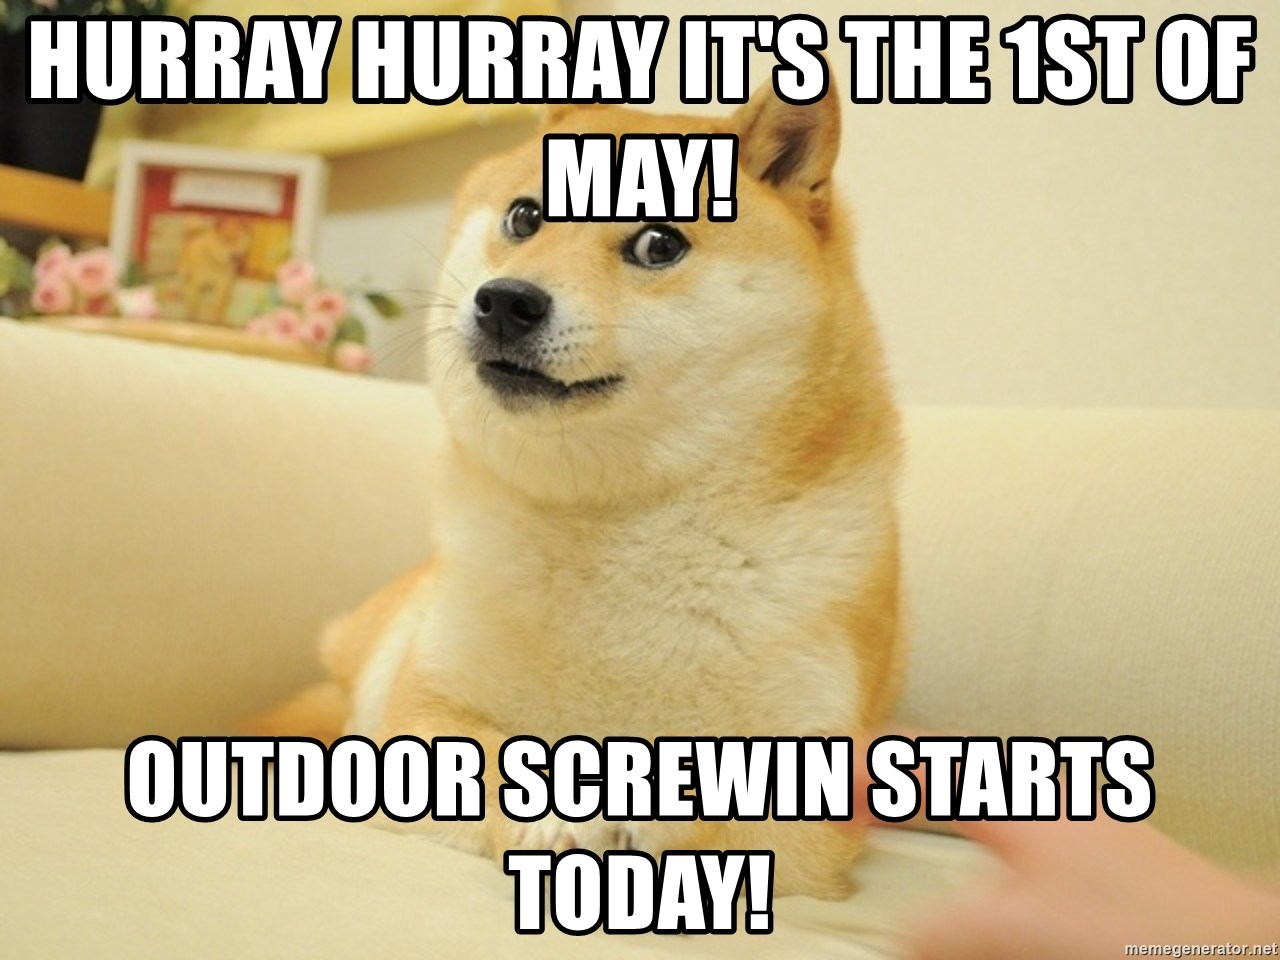 so doge - Hurray Hurray it's the 1st of May! Outdoor screwin starts today!